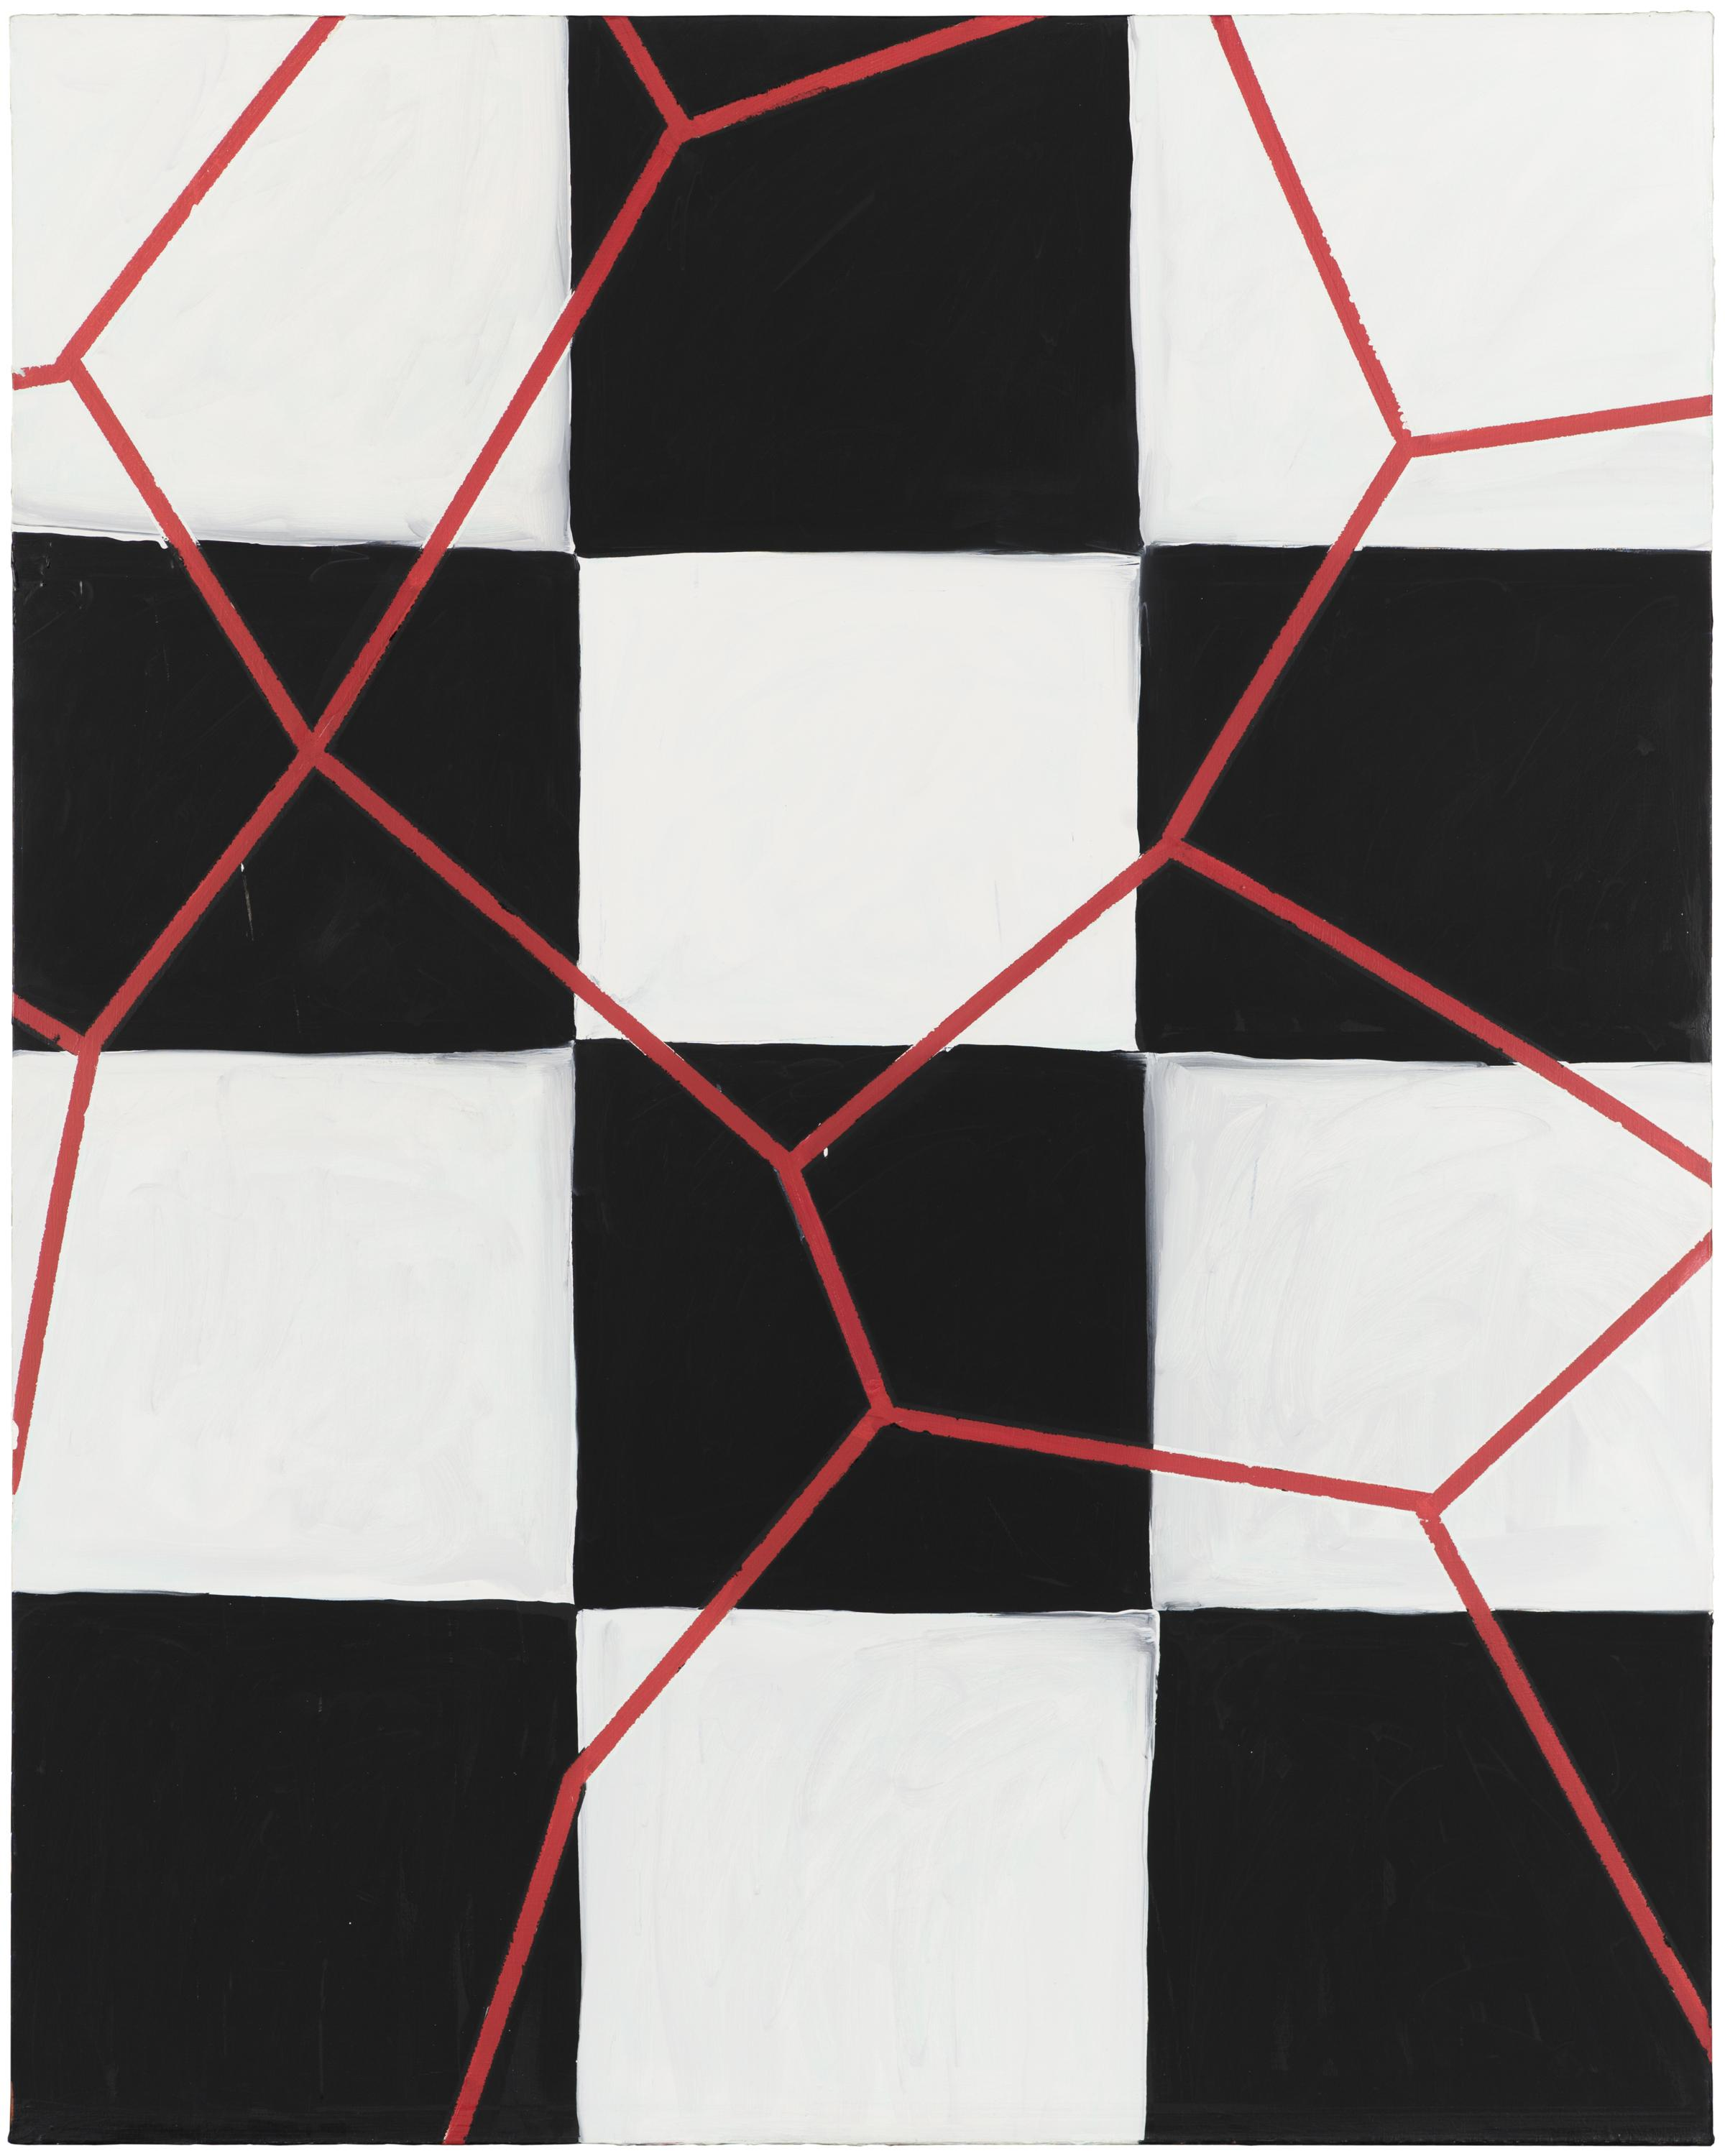 A vertical grid of black and white squares has an irregular web of thin, straight red lines painted over it.